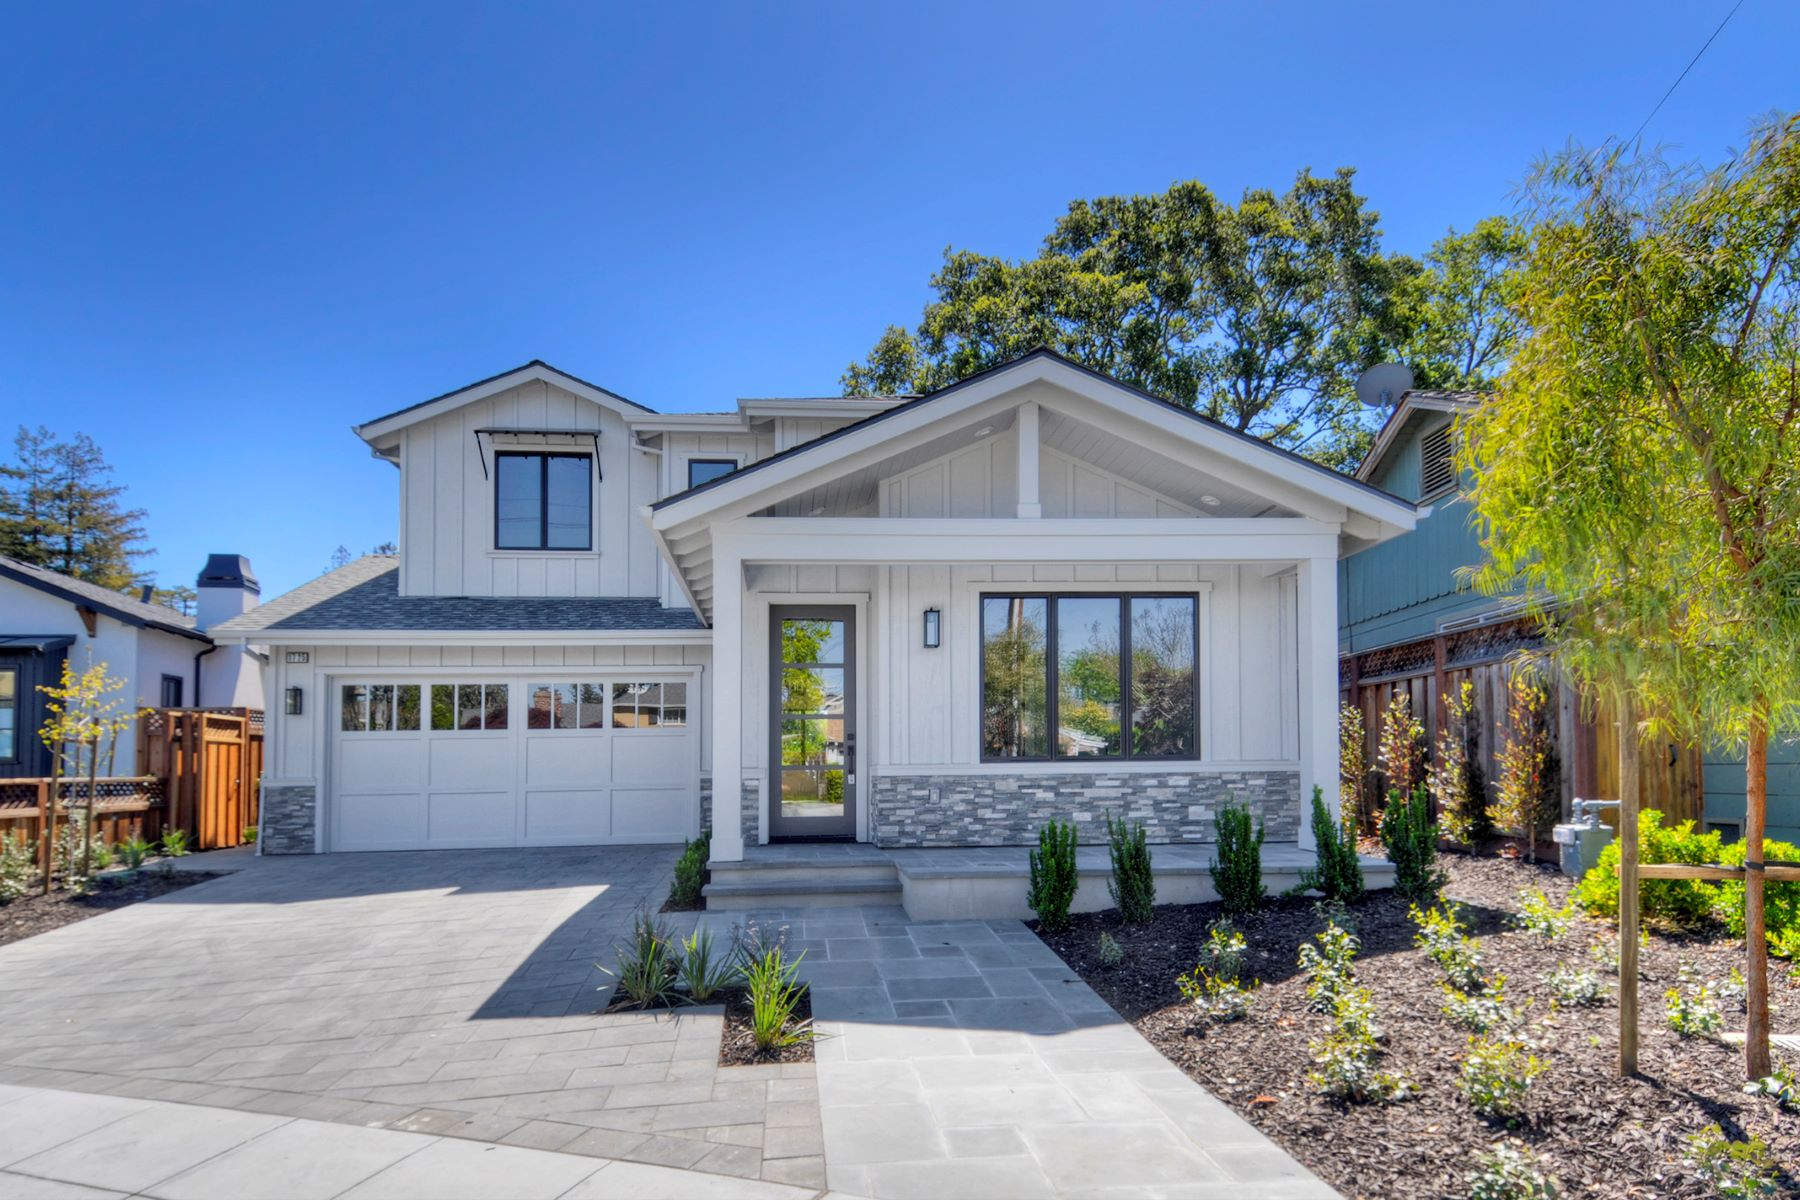 Single Family Homes for Sale at Brand New Construction in White Oaks! 1725 Eaton Avenue San Carlos, California 94070 United States